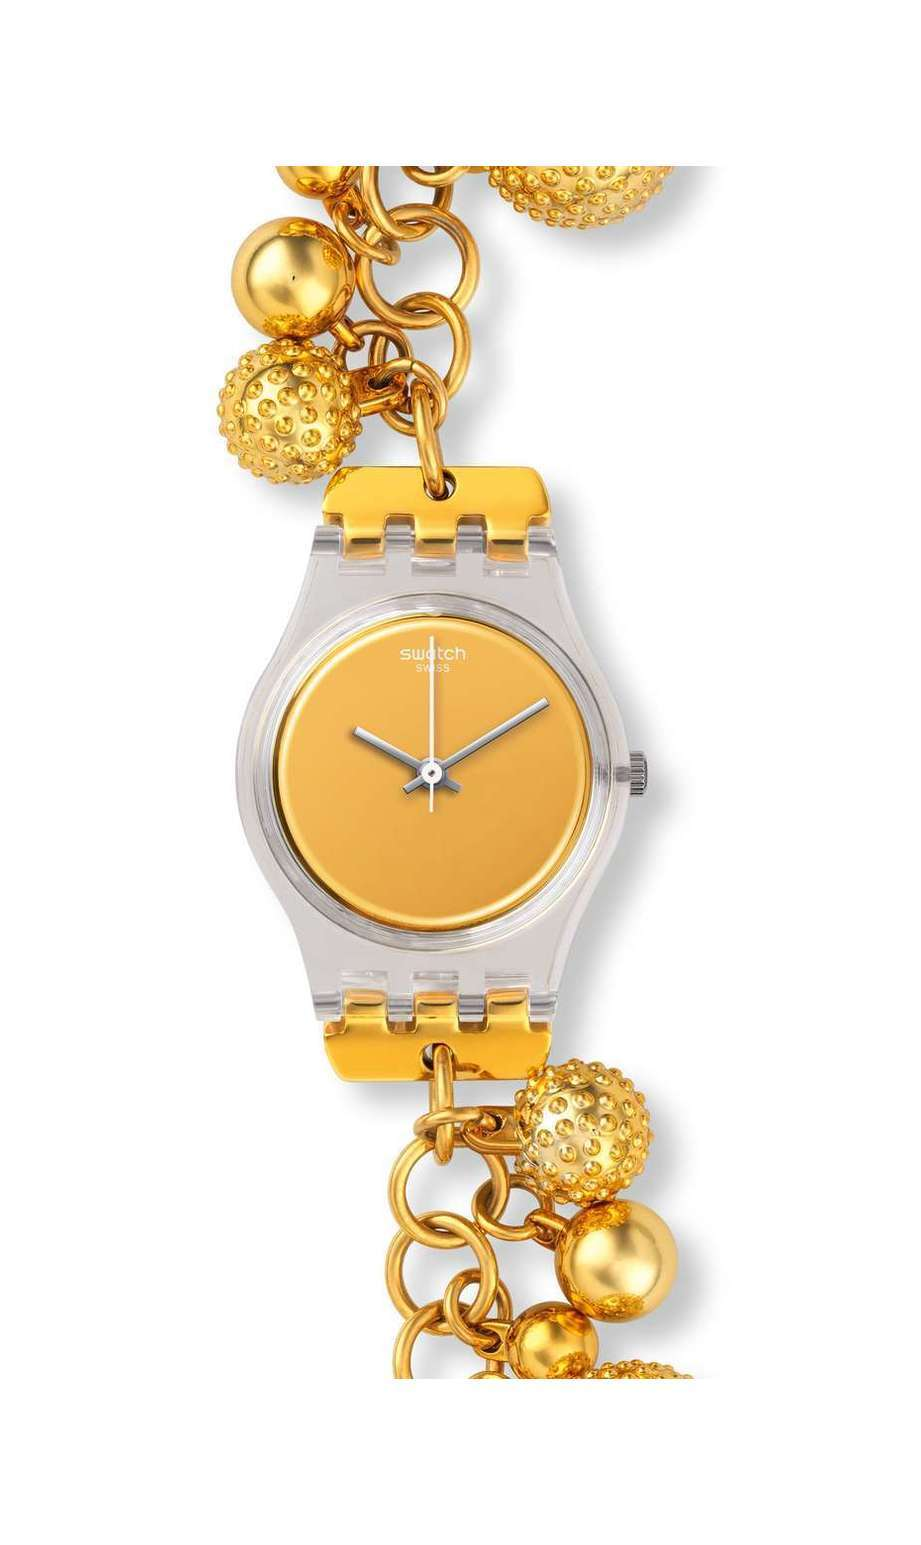 Swatch - BOULE D'OR - 1